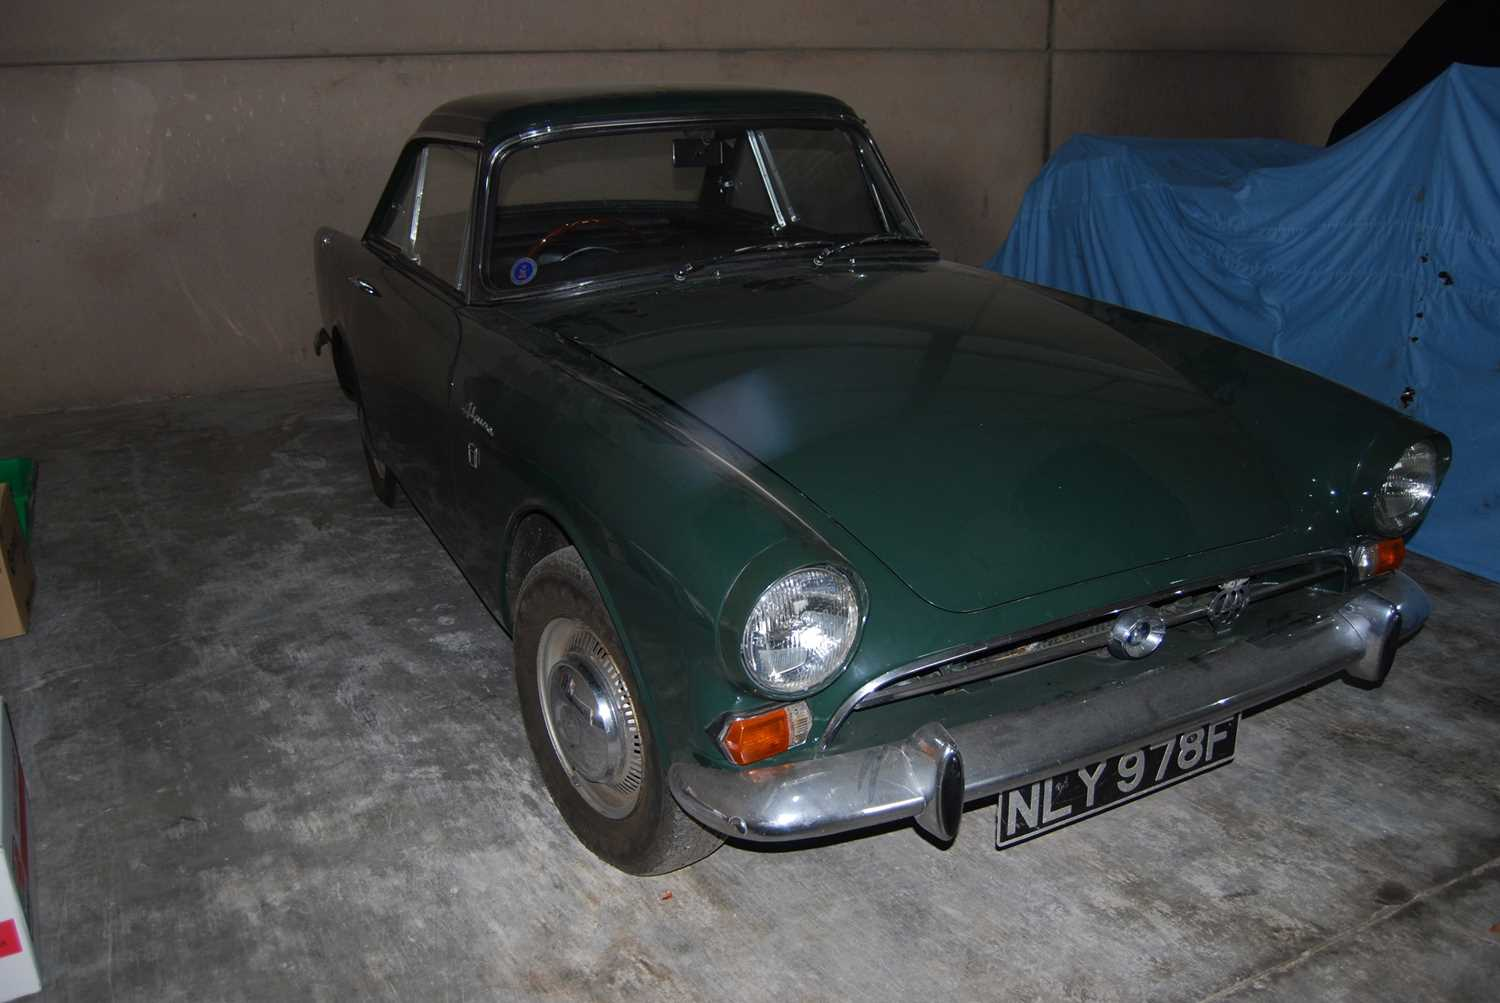 A 1968 Sunbeam Alpine Series V GT Reg No. NLY978F Chassis No. B395016307GTOD Green with Black - Image 12 of 43